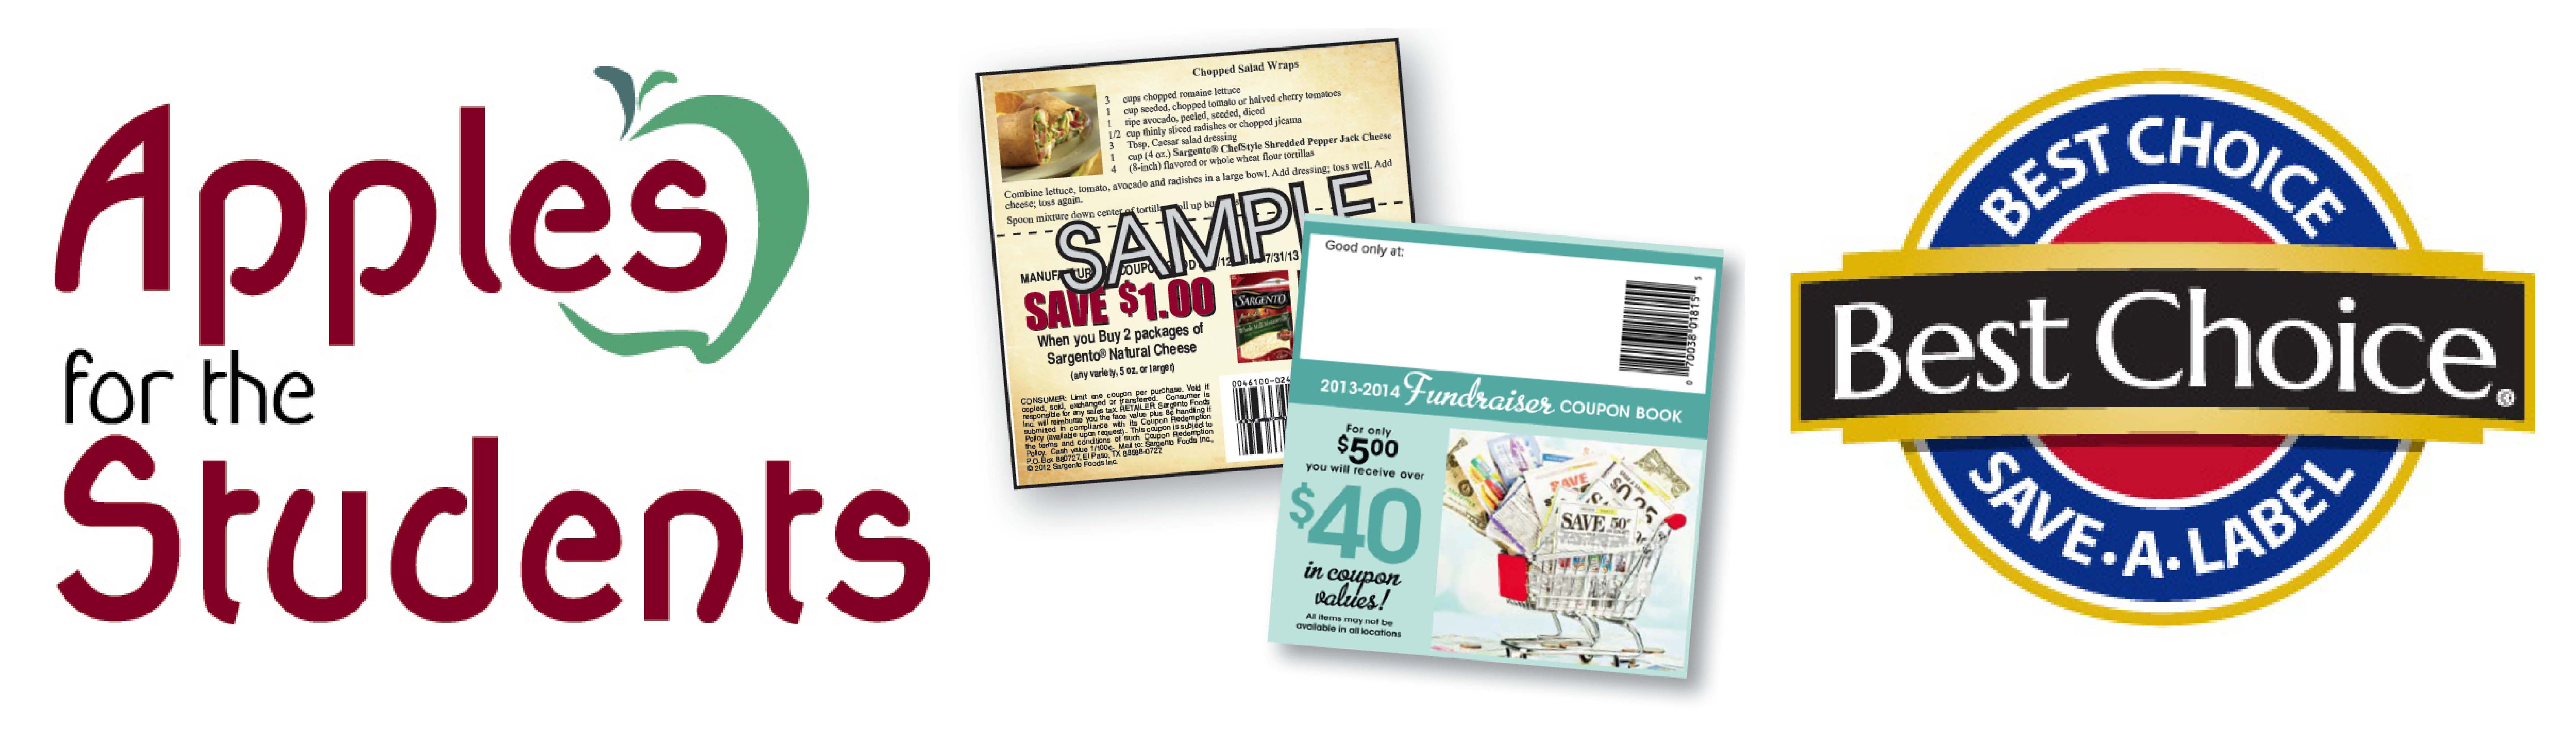 Apples for the Students, coupon fundraier books, Best Choice Save-a-Label